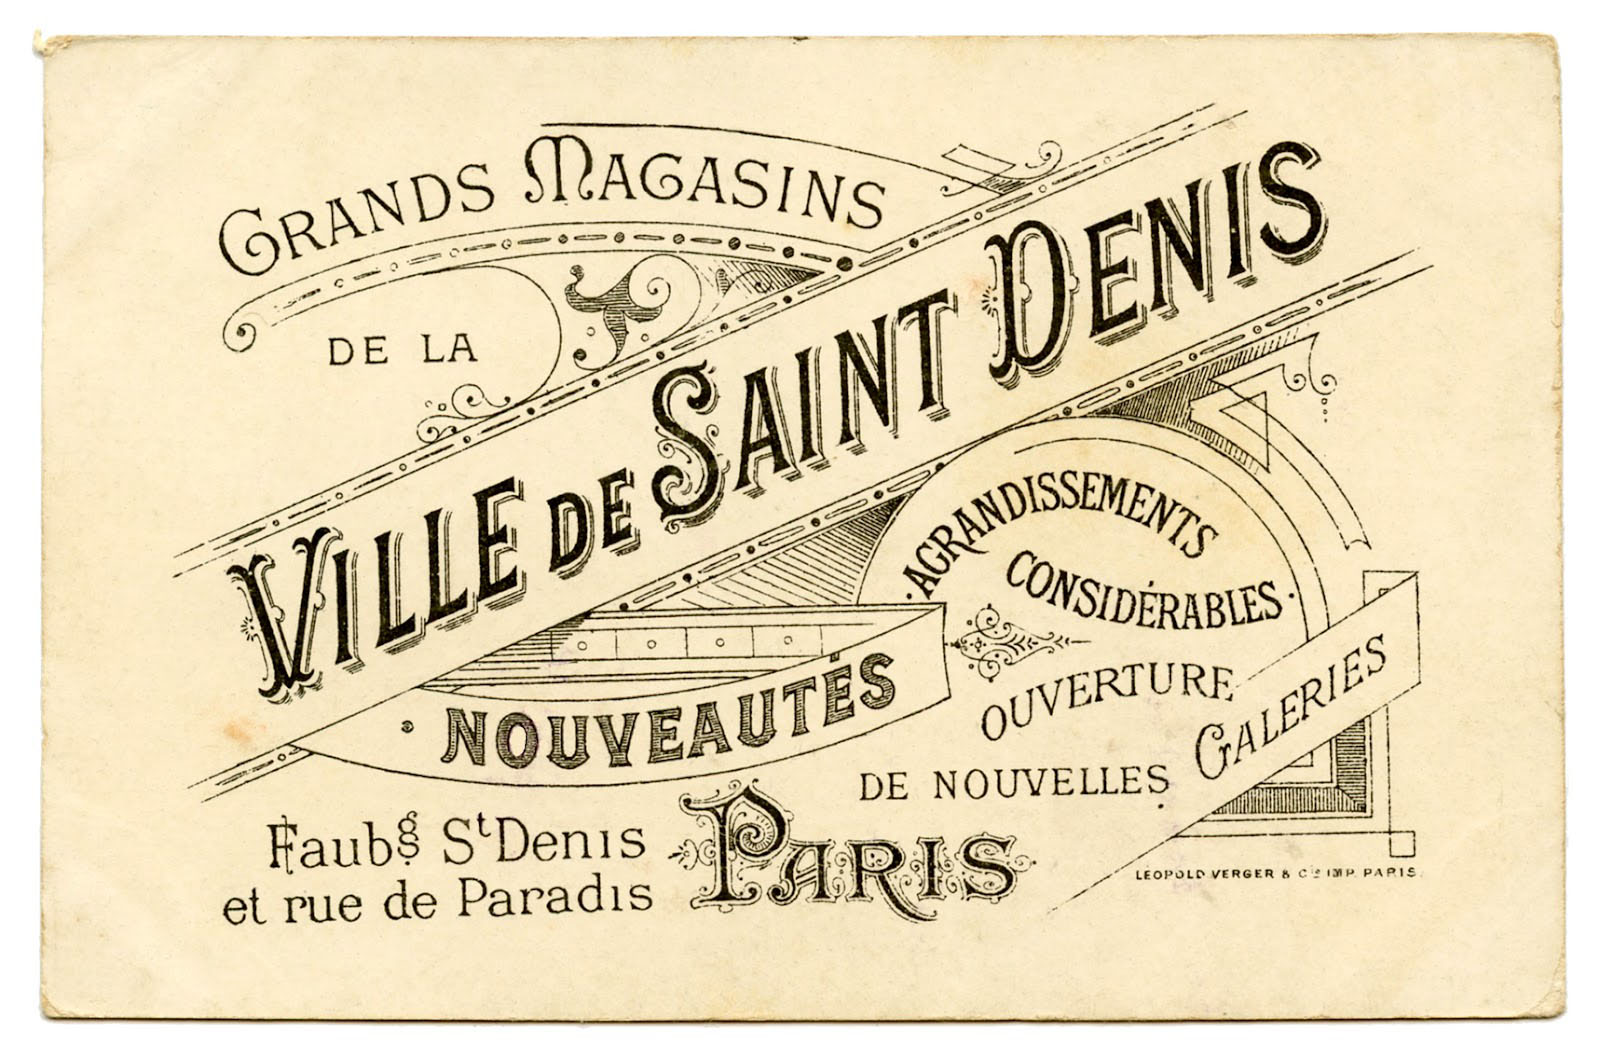 paris+ephemera+vintage+image+GraphicsFairysm